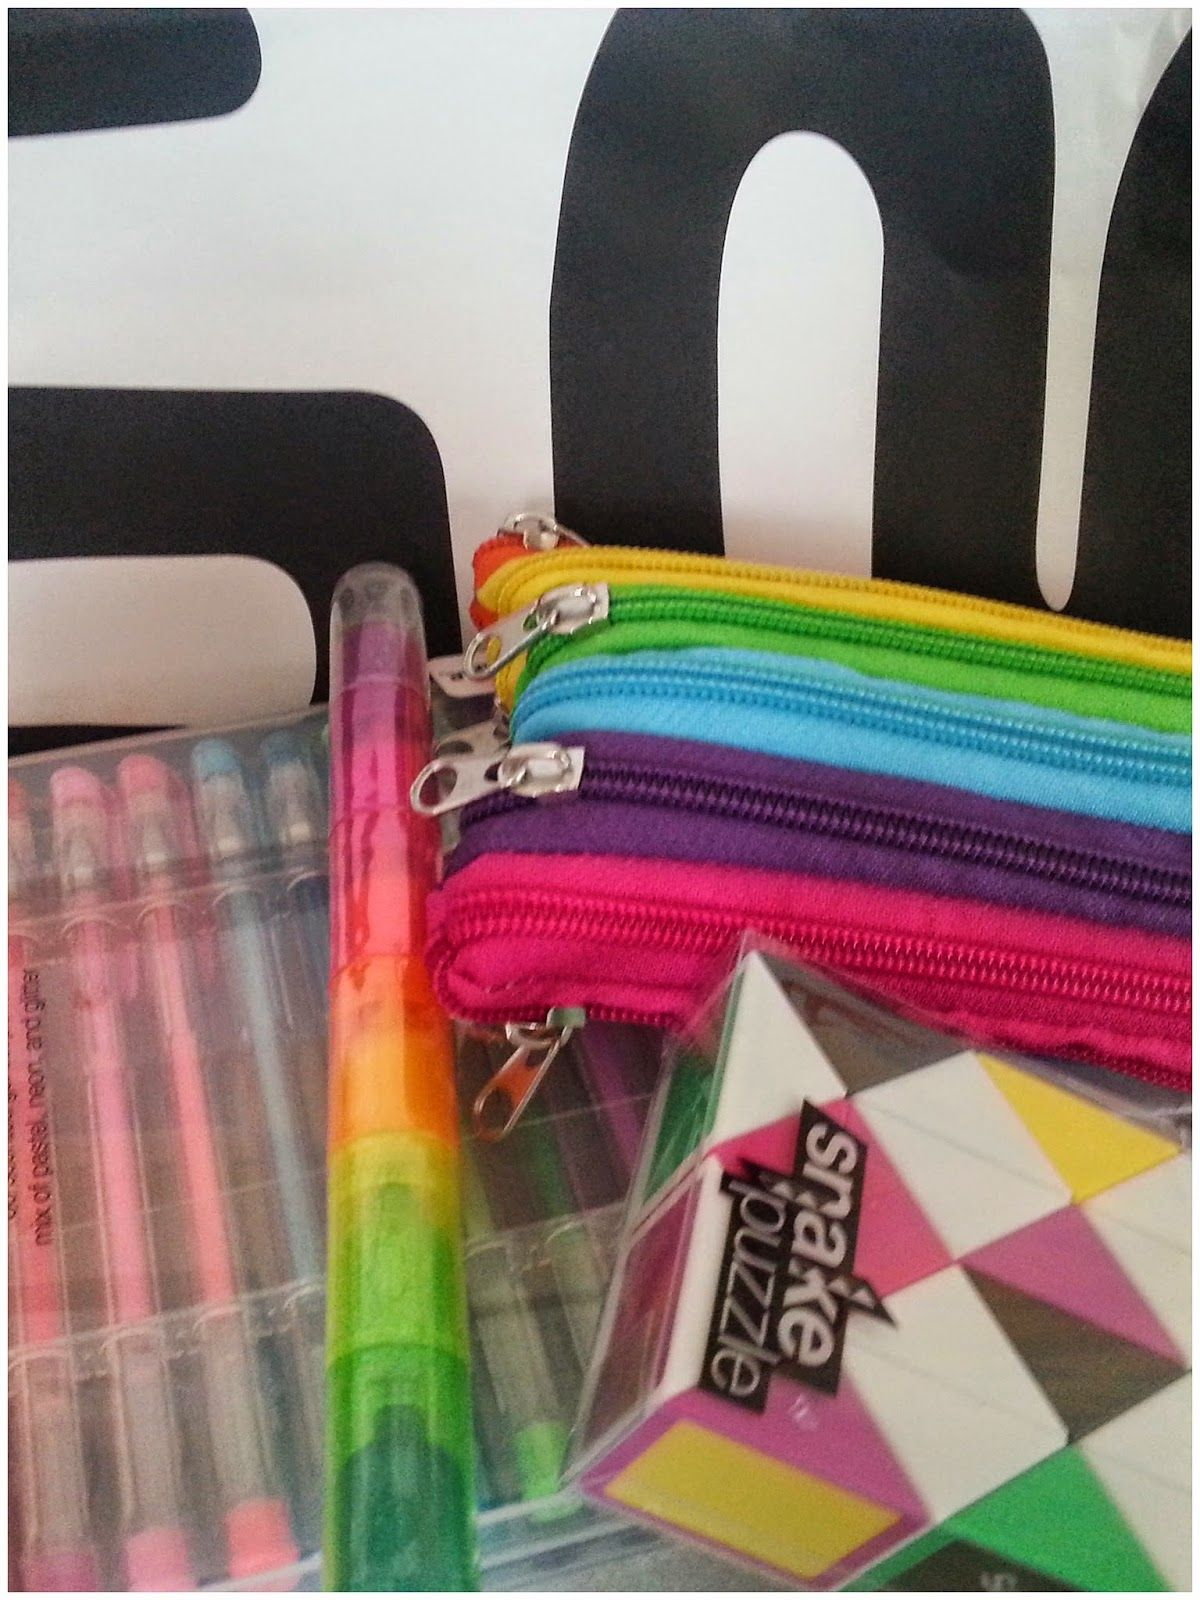 Mummy_Of_3_Diaries: Having Fun With Smiggle Stationery #Review